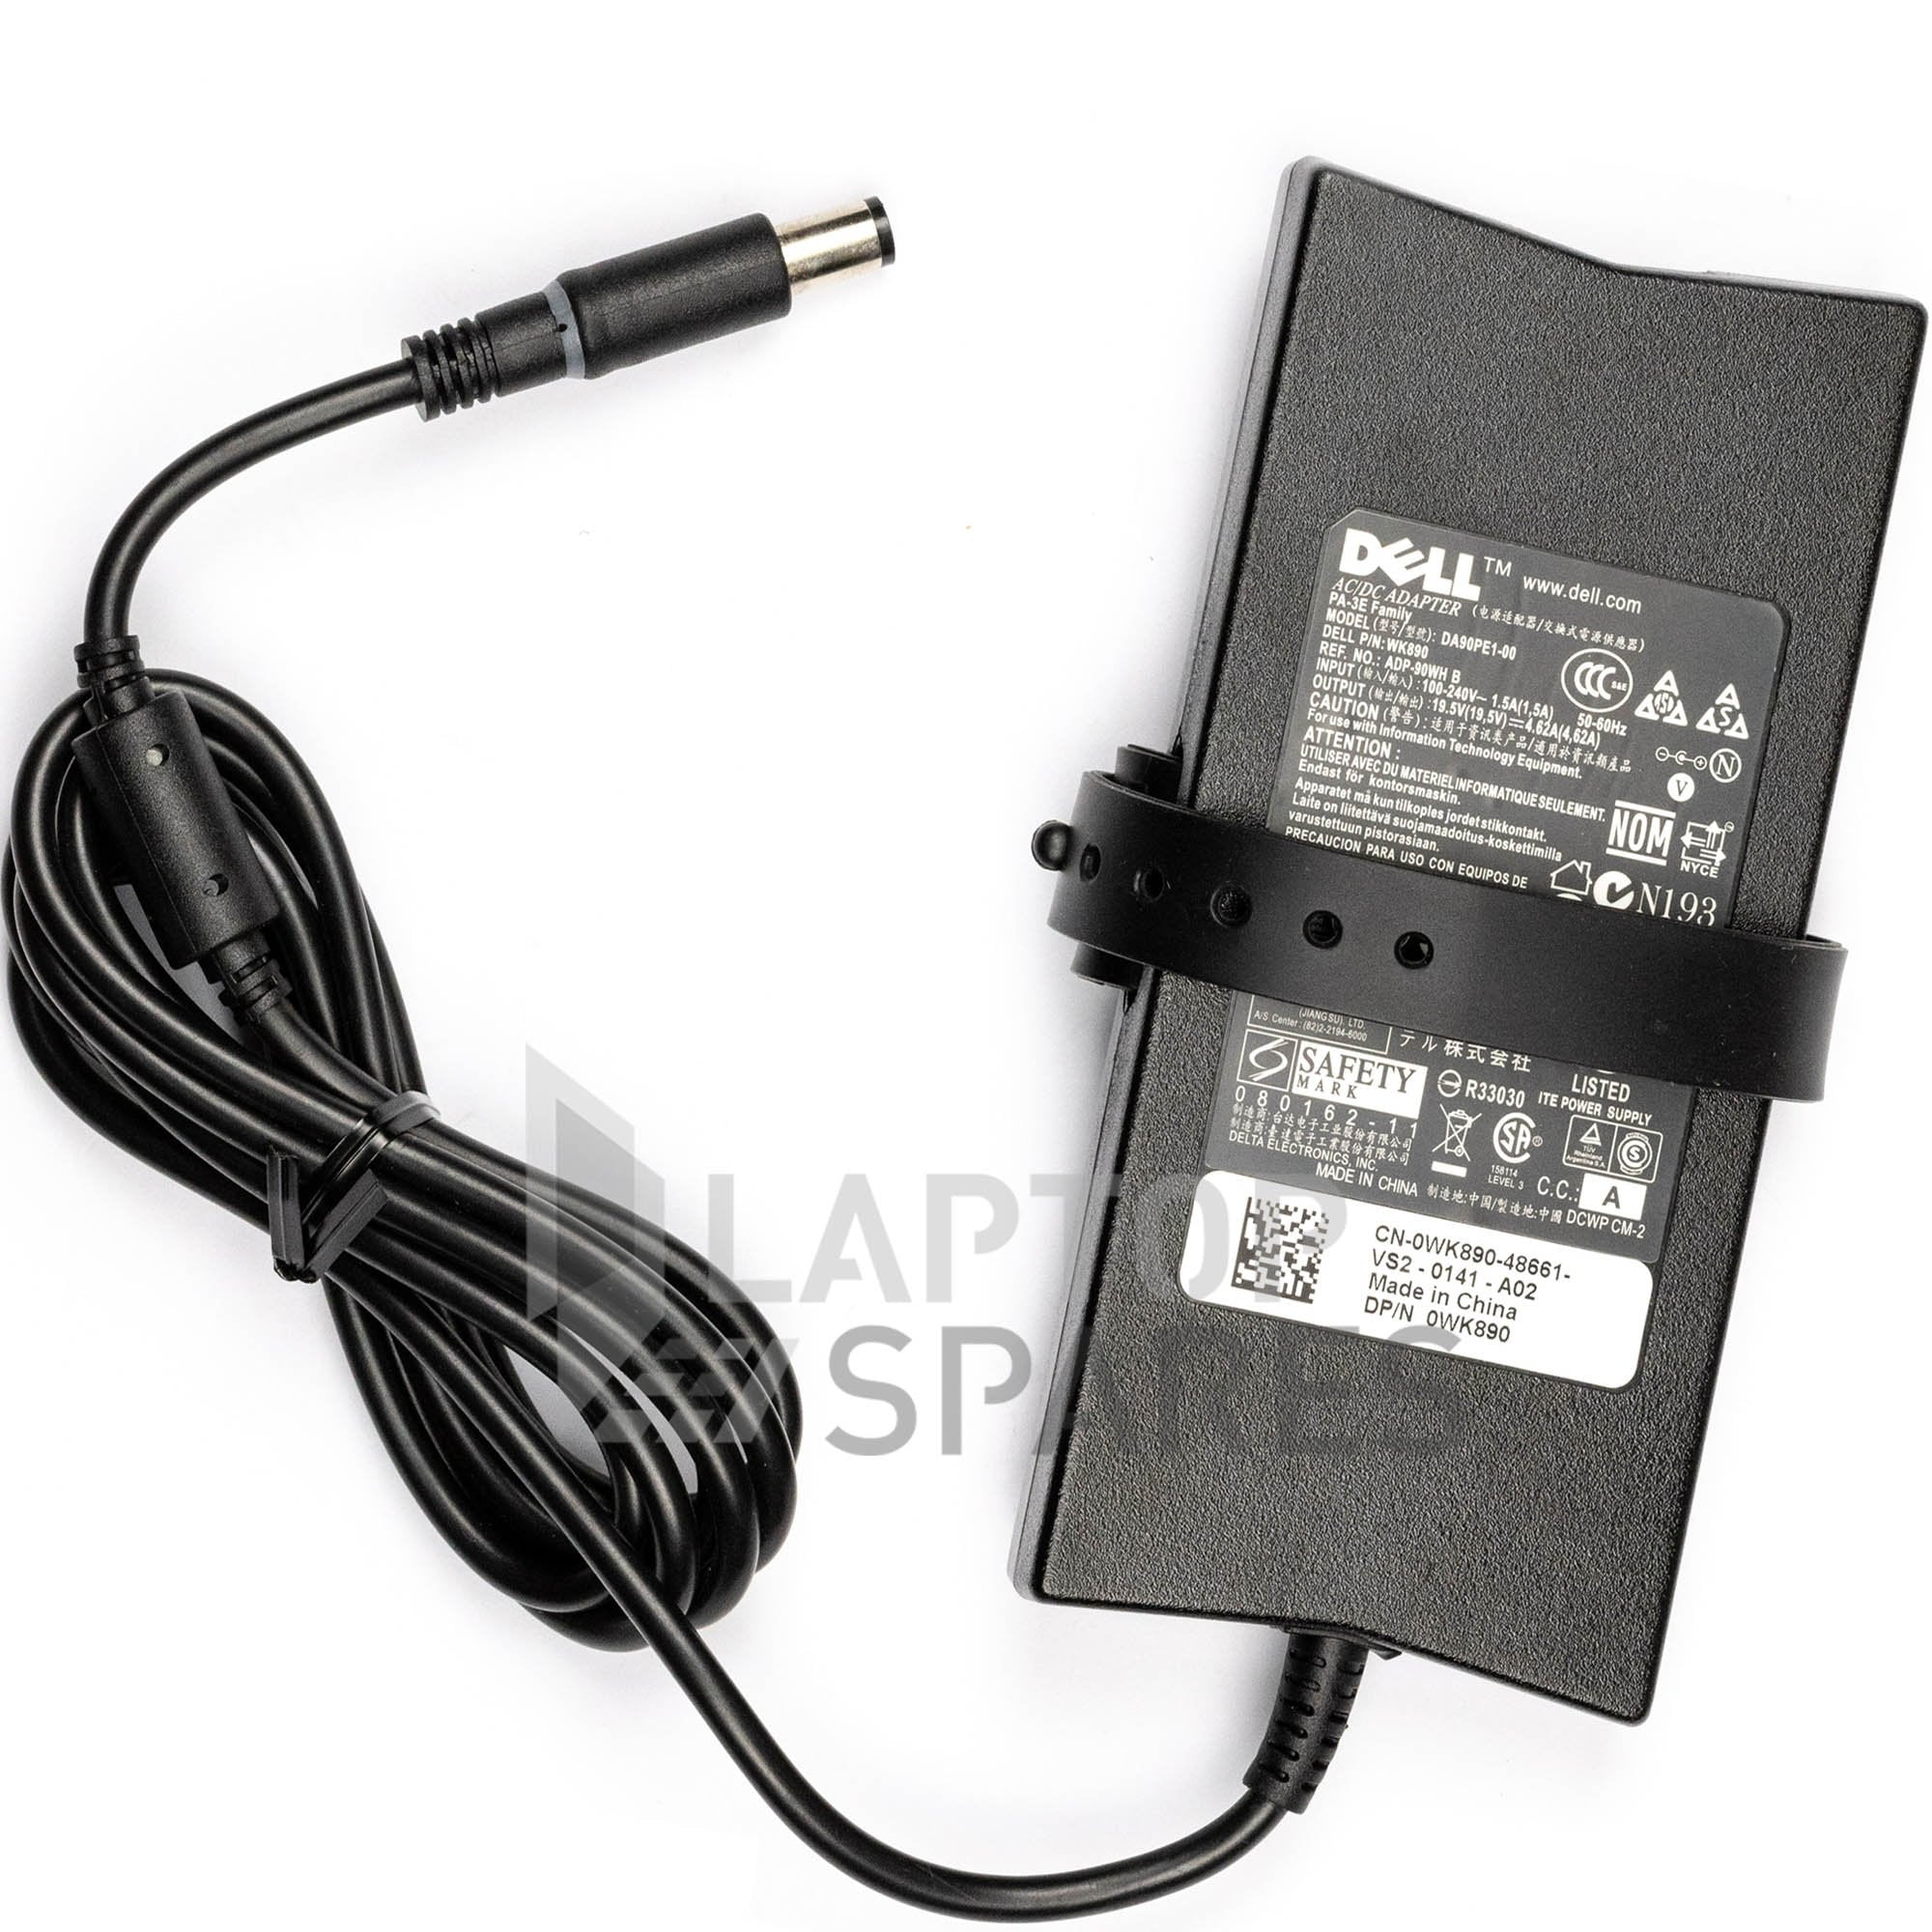 Dell Inspiron XPS M1210 Laptop Slim AC Adapter Charger